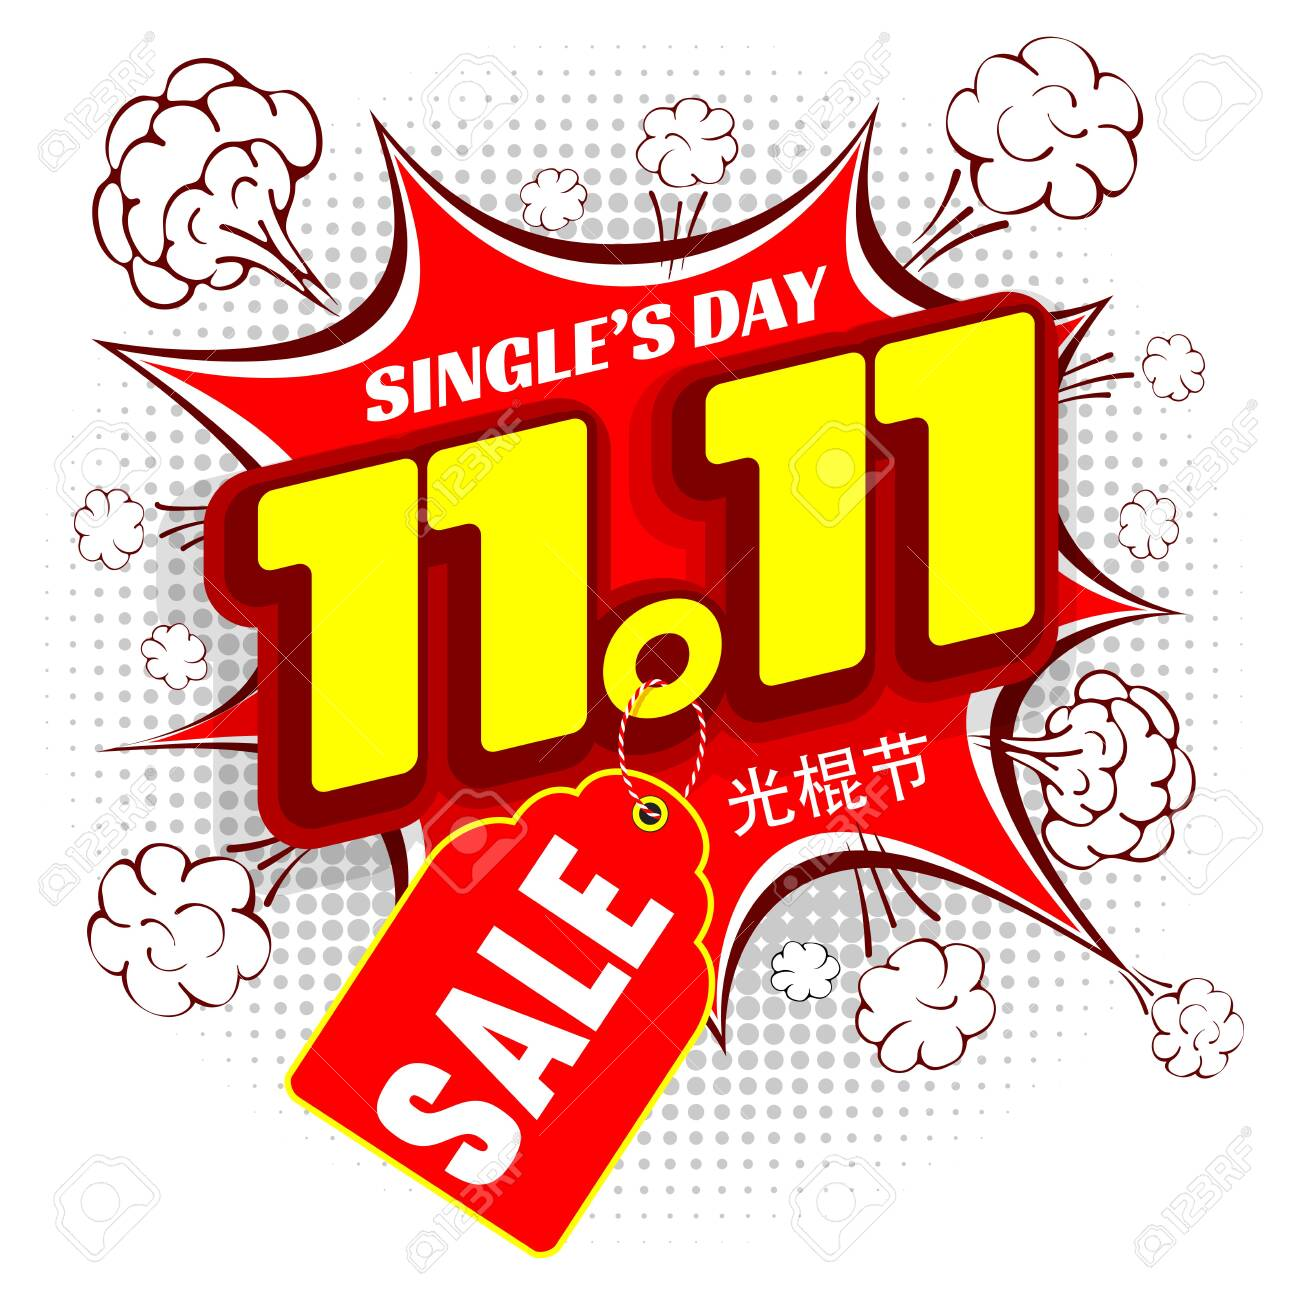 Advertising design for Great Sale on Chinese holiday 11 November, Singles Day. Comics or pop art style. Isolated on white background. Chinese translate : Singles Day. Vector illustration. - 132260240